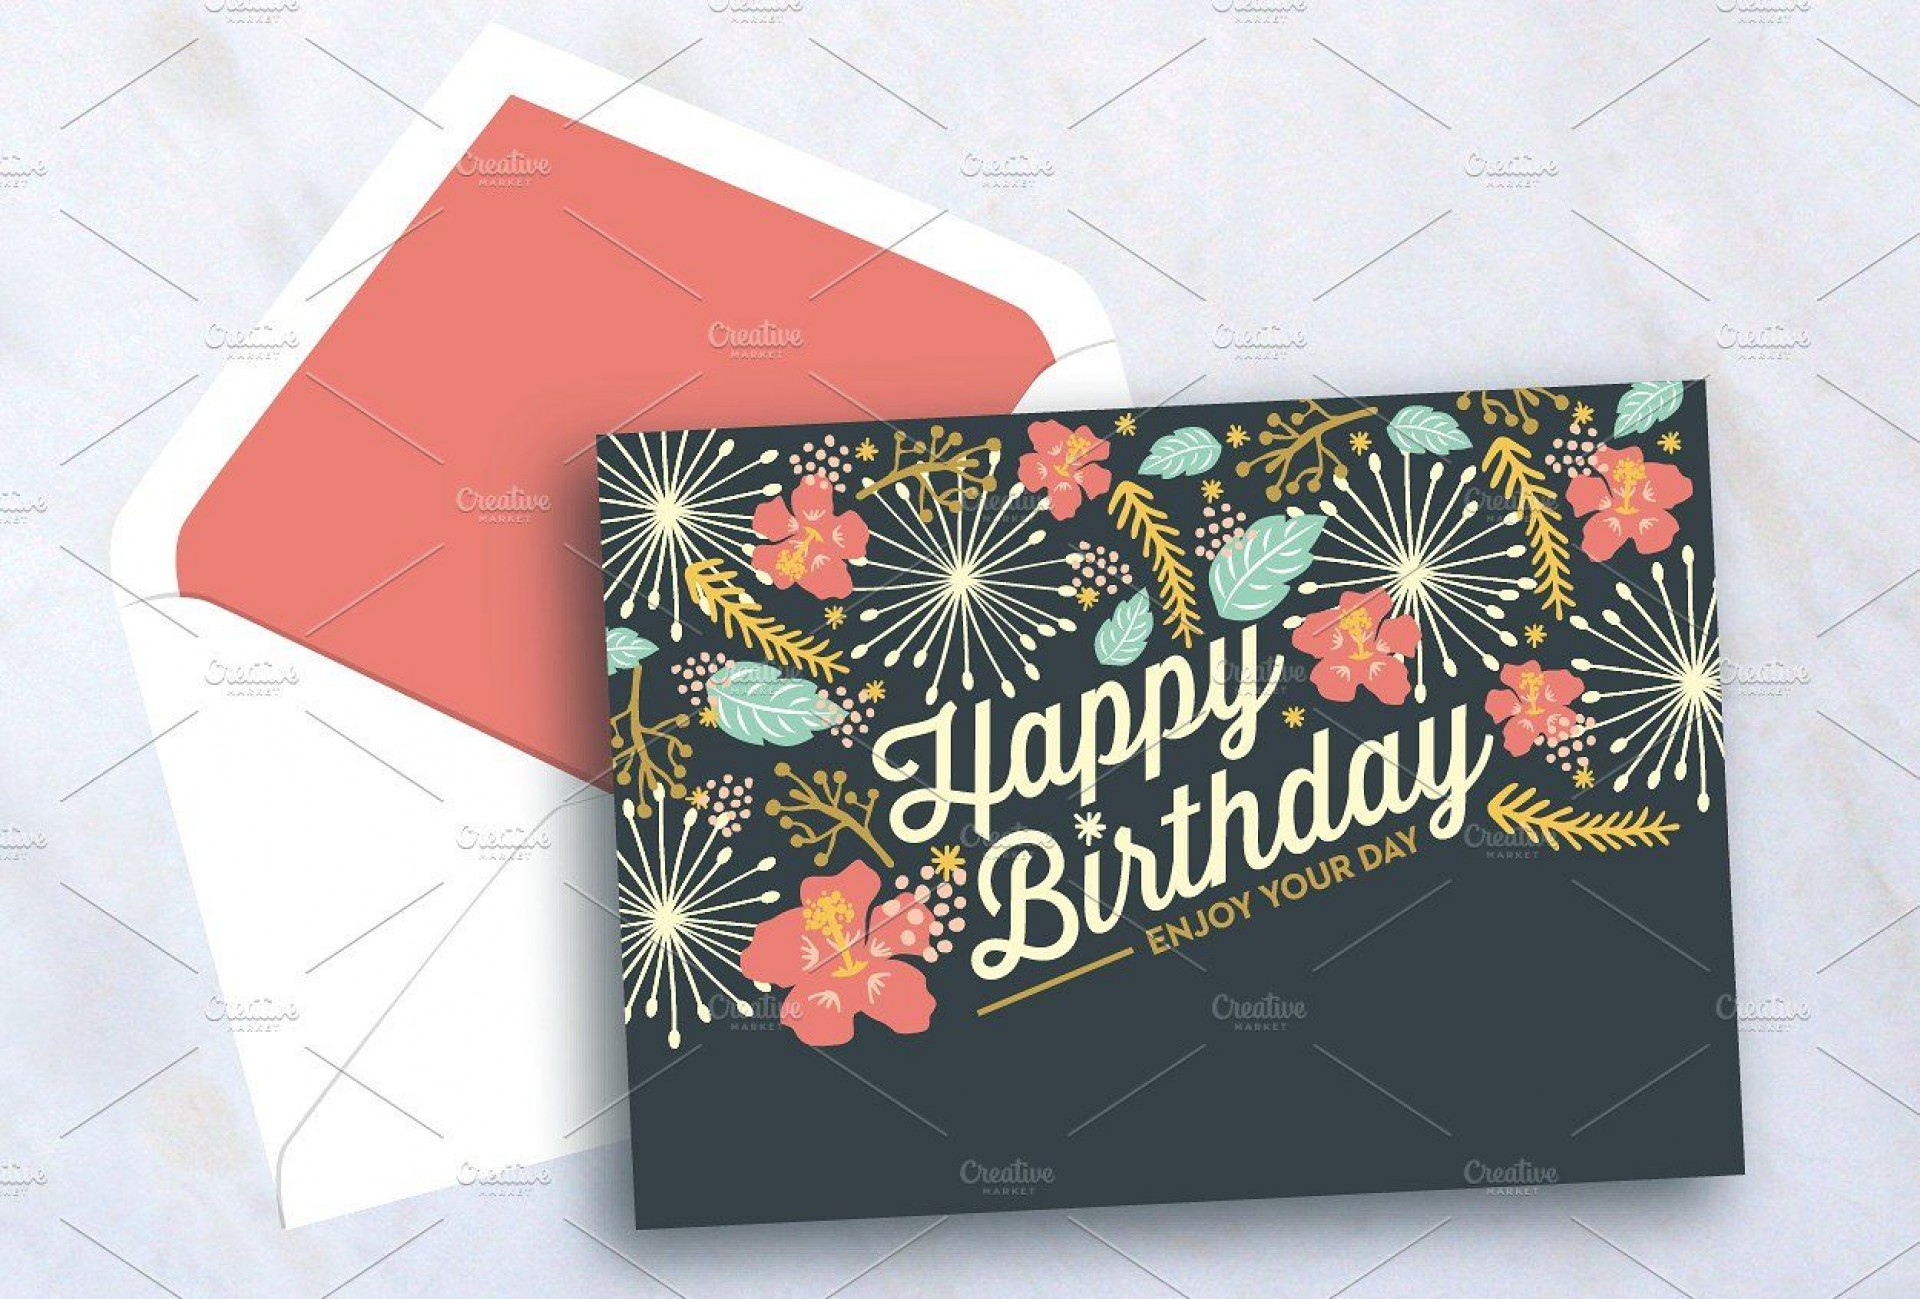 007 Magnificent Birthday Card Template Photoshop Concept  Greeting Format 4x6 Free1920